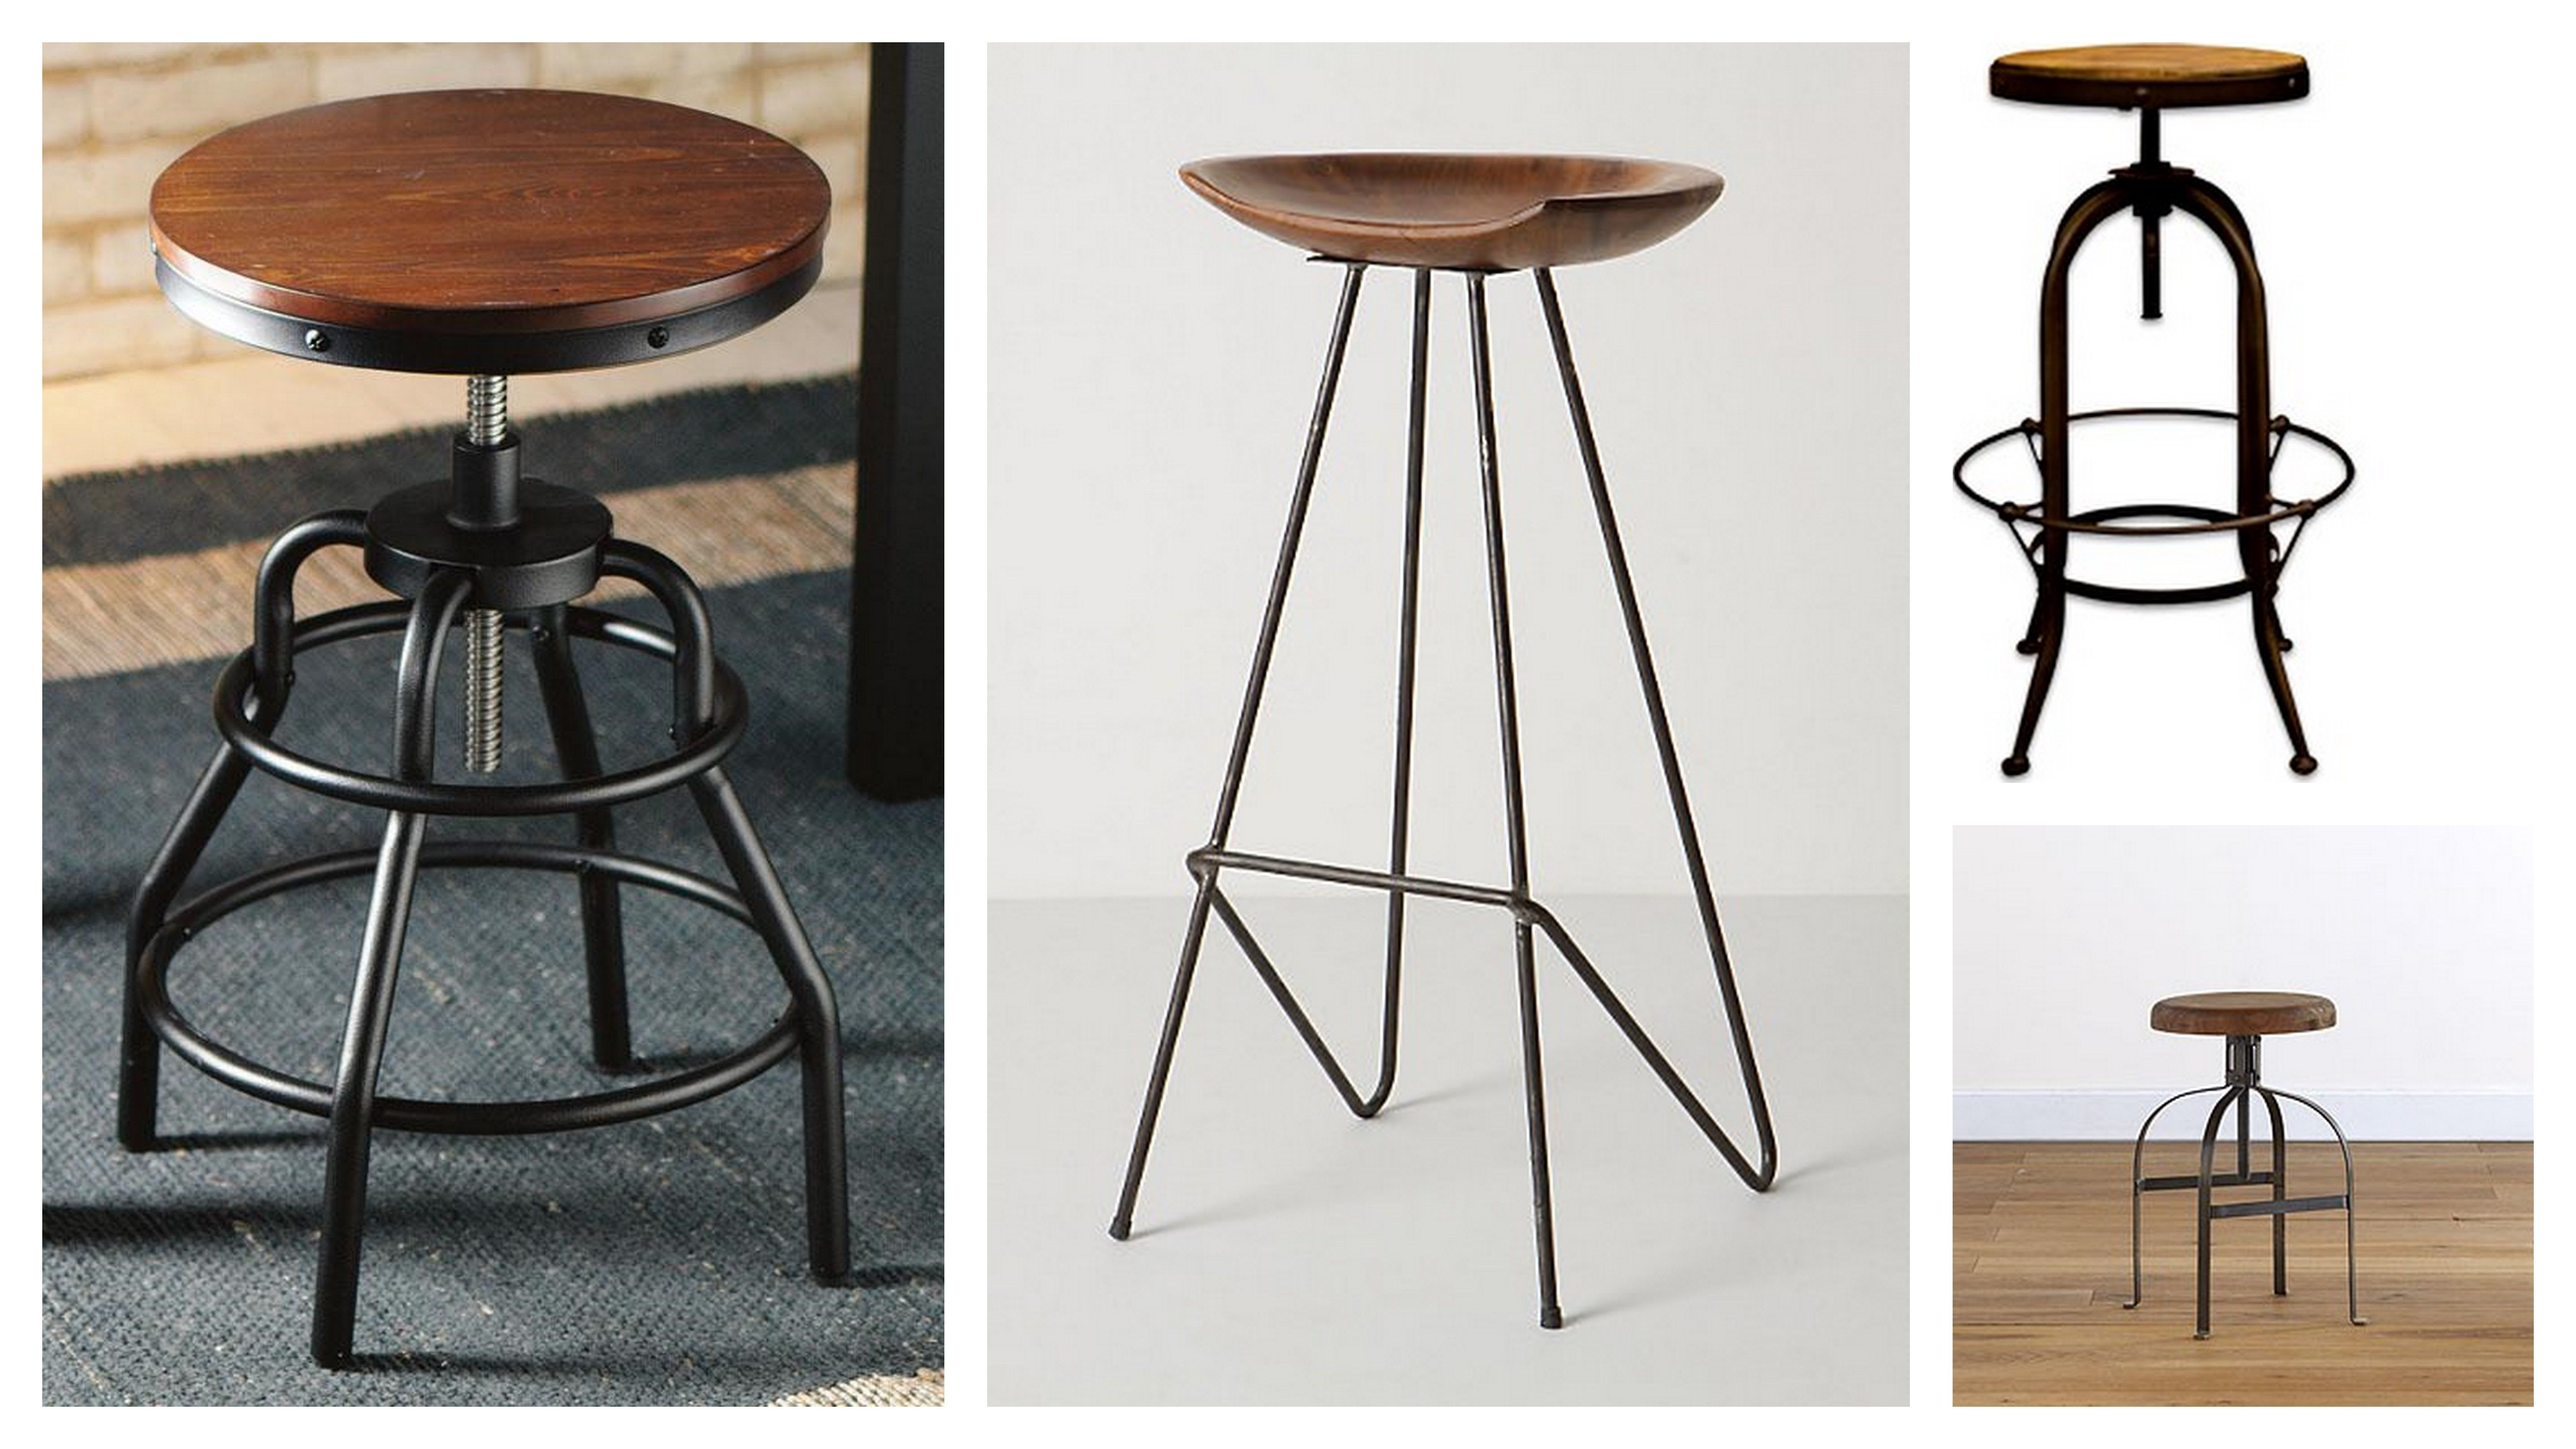 Unique Designs Of Bar Stools With Round Wood Tops And Unusual Legs